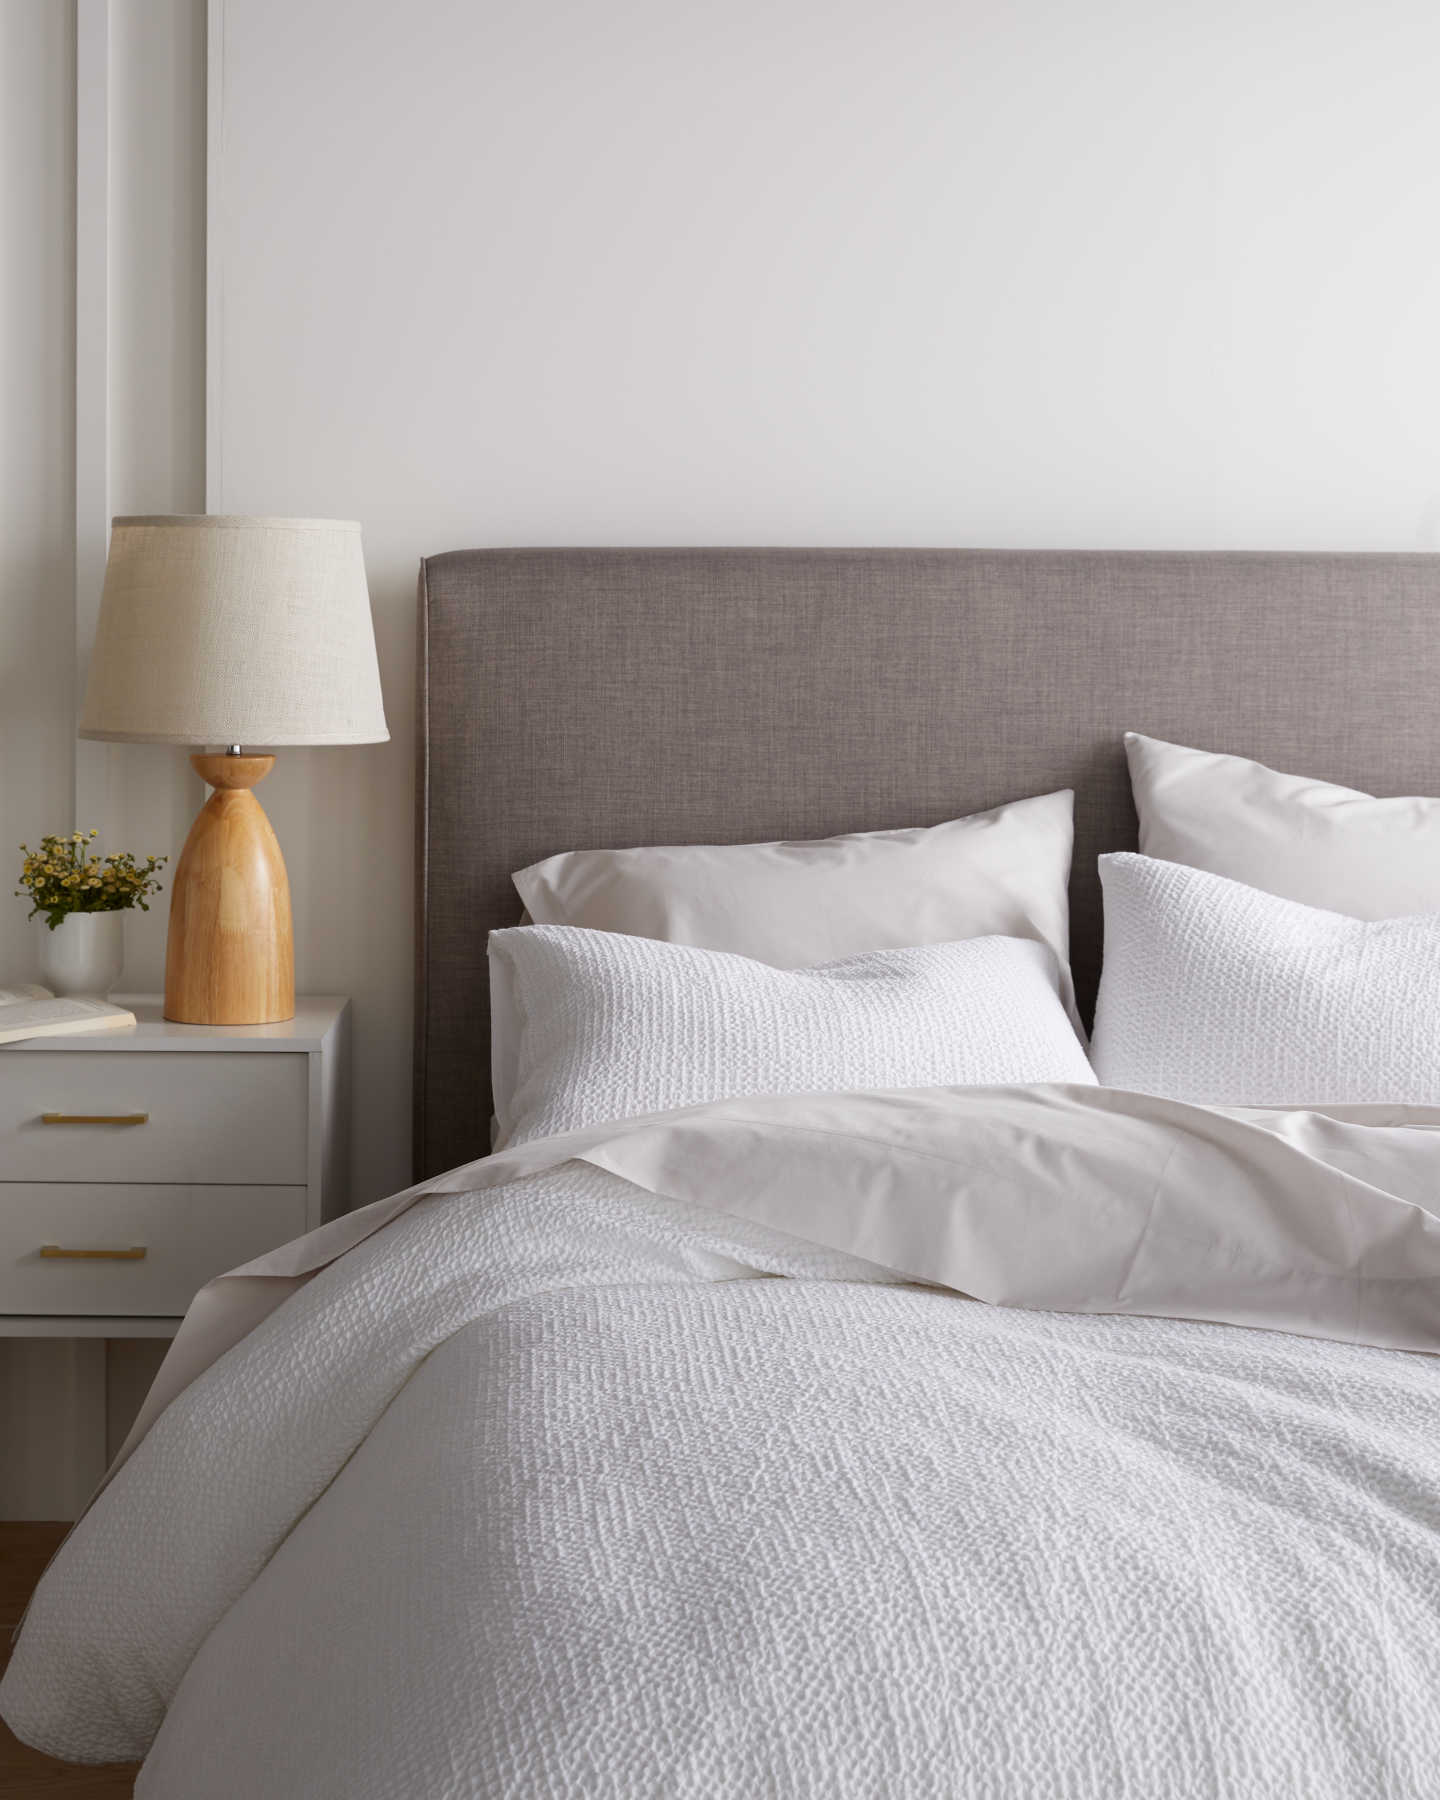 White waffle duvet cover set on bed